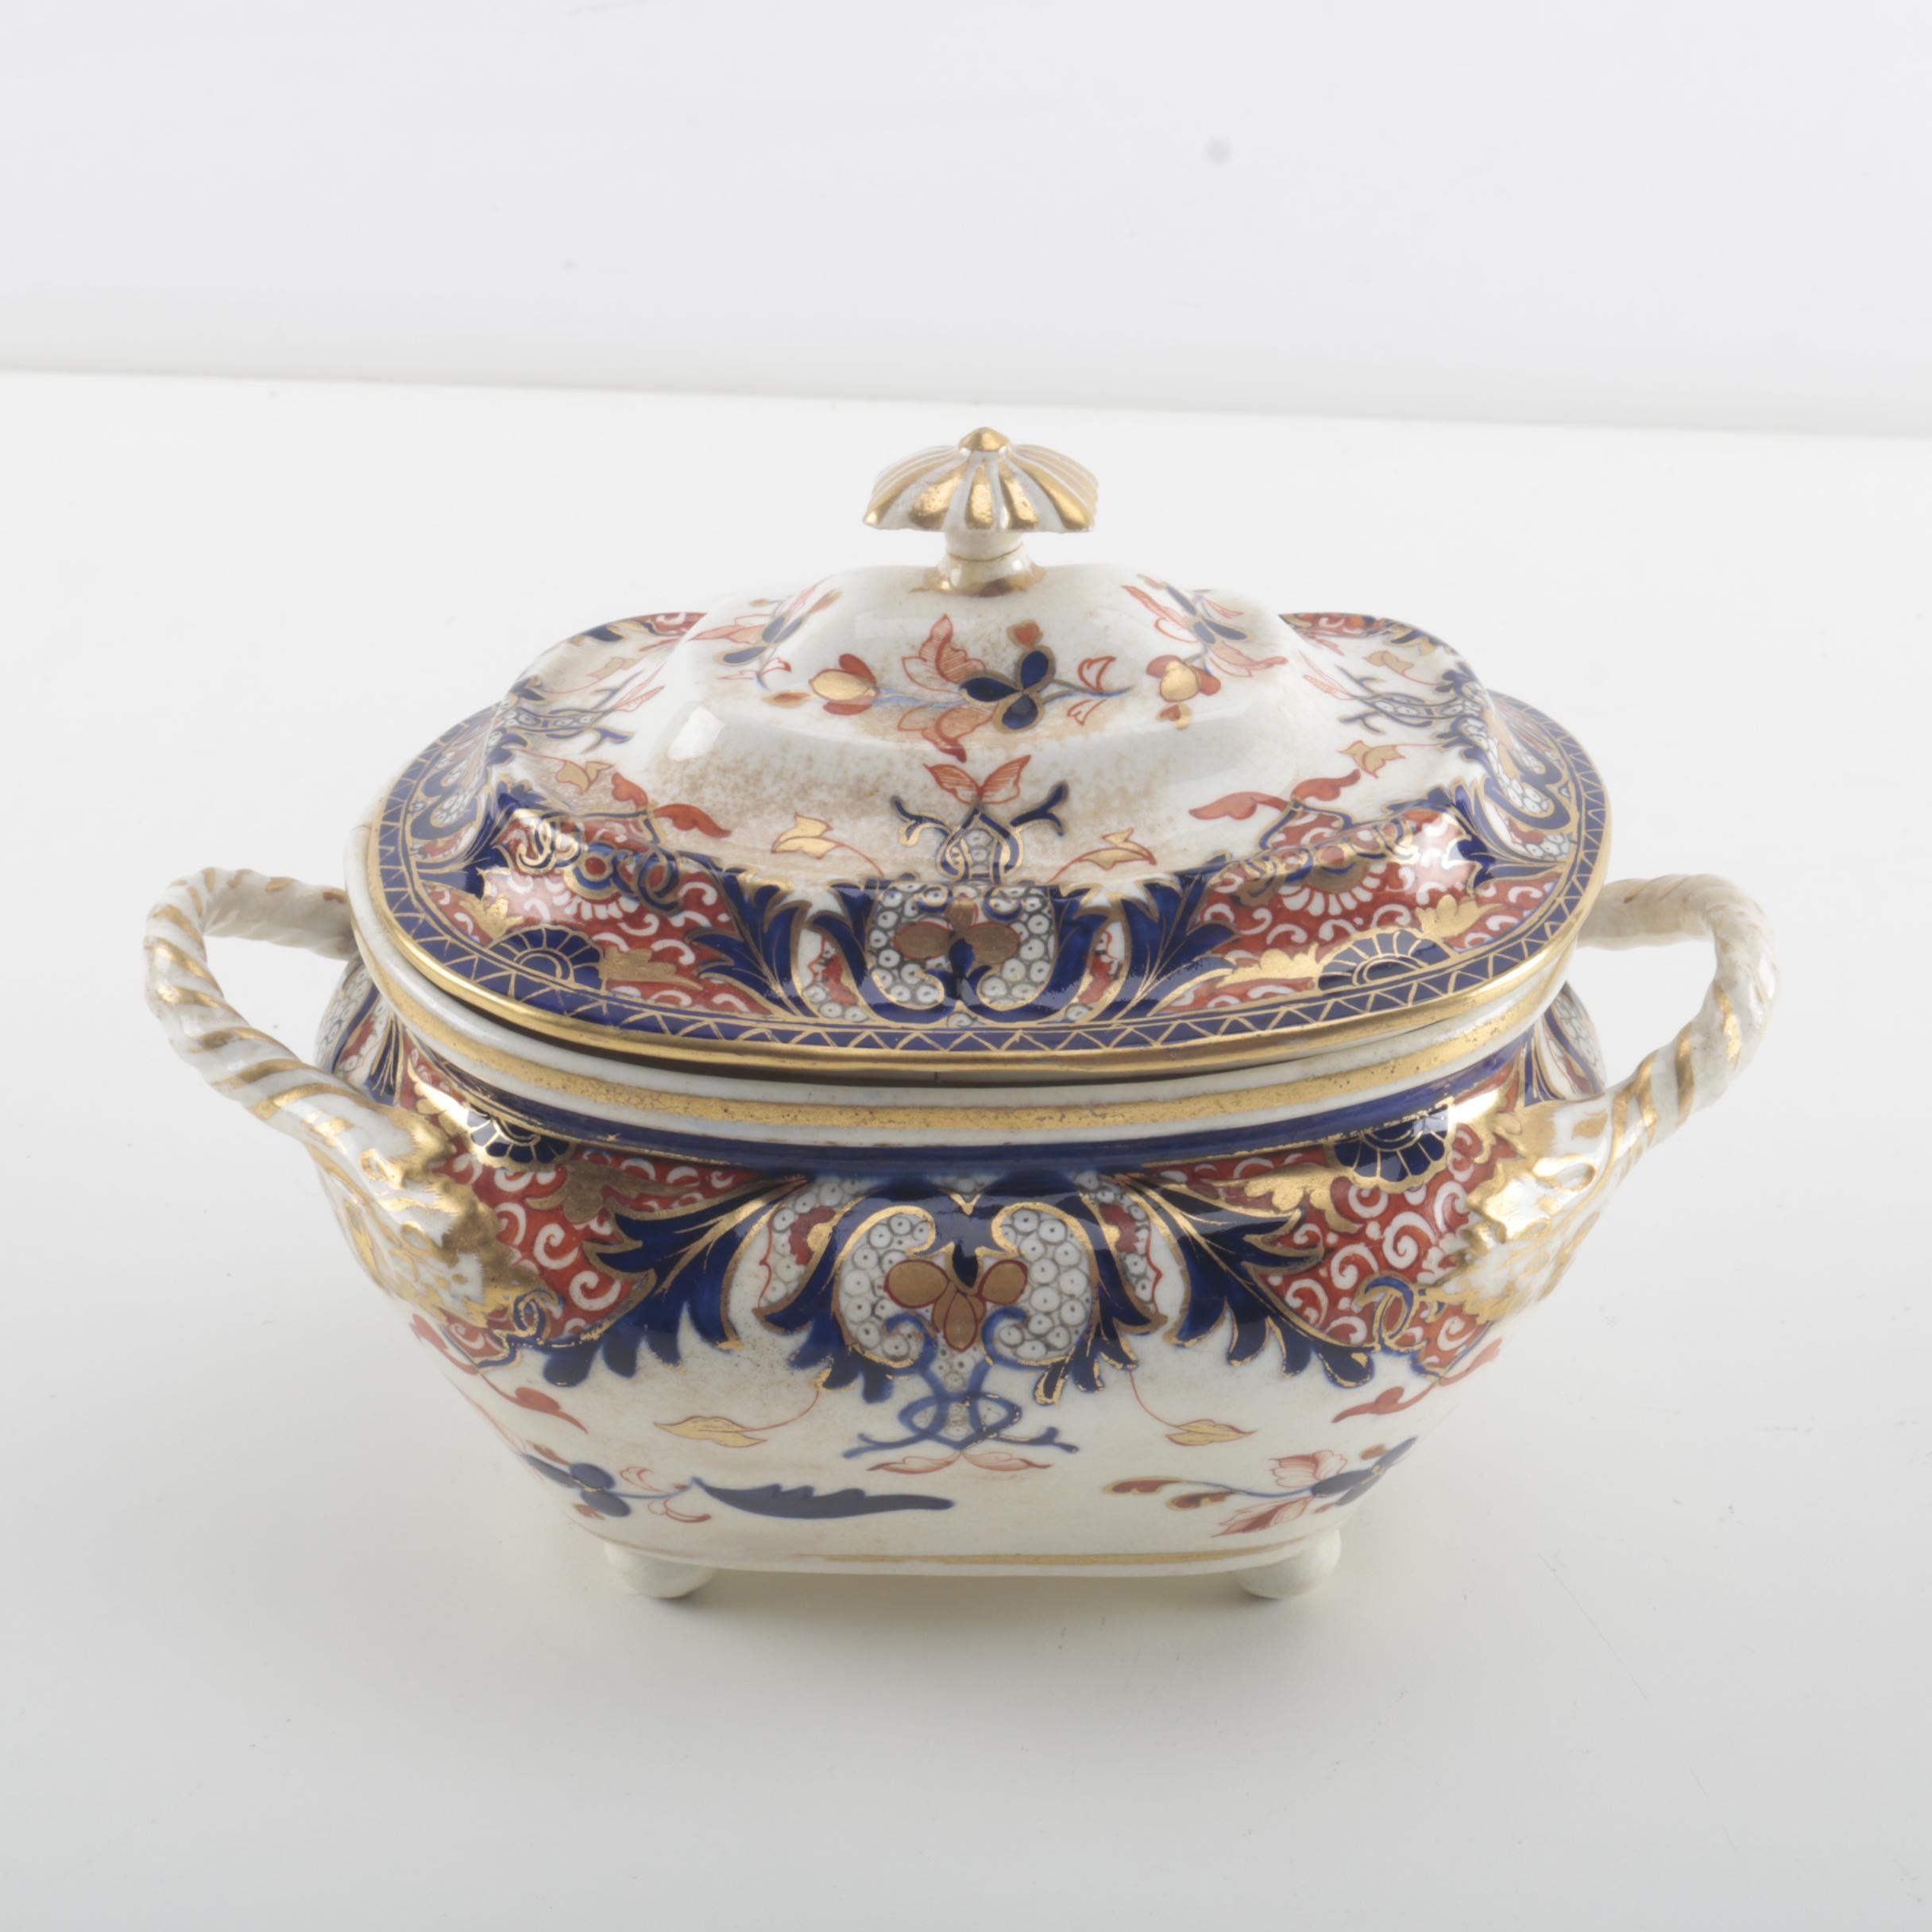 Antique Royal Crown Derby Imari Style Lidded Dish